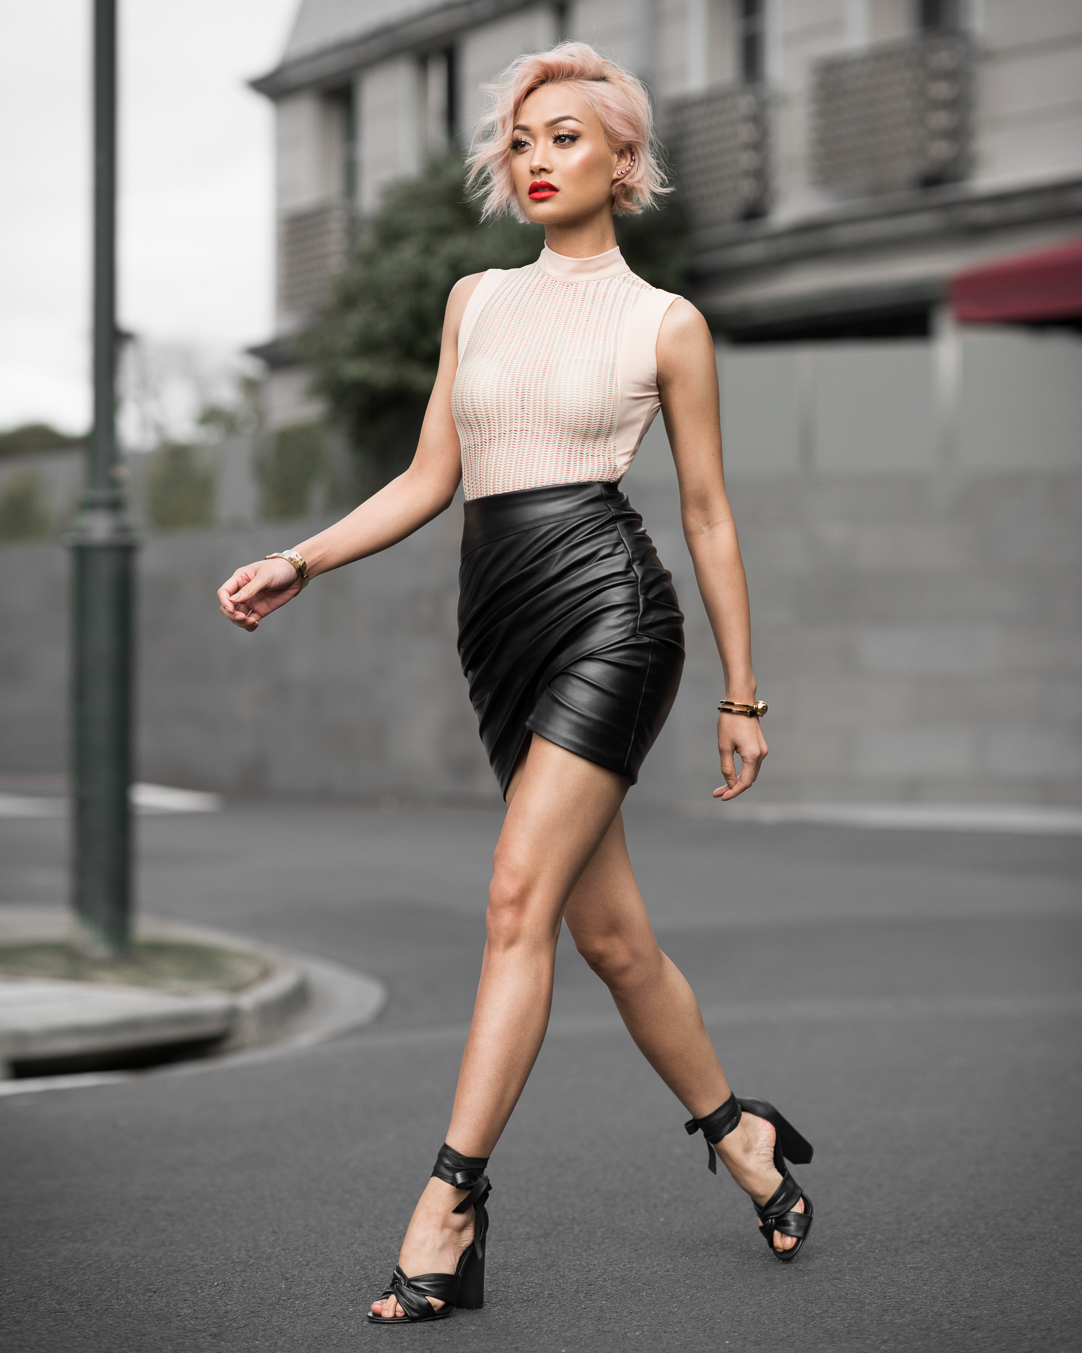 Micah-Gianneli-Windsor-Smith-Mistress-Rocks-Streetstyle-Fashion-Editorial-Campaign-Footwear-Fashionweek-Australian-Melbourne-Blogger-Hairstyle